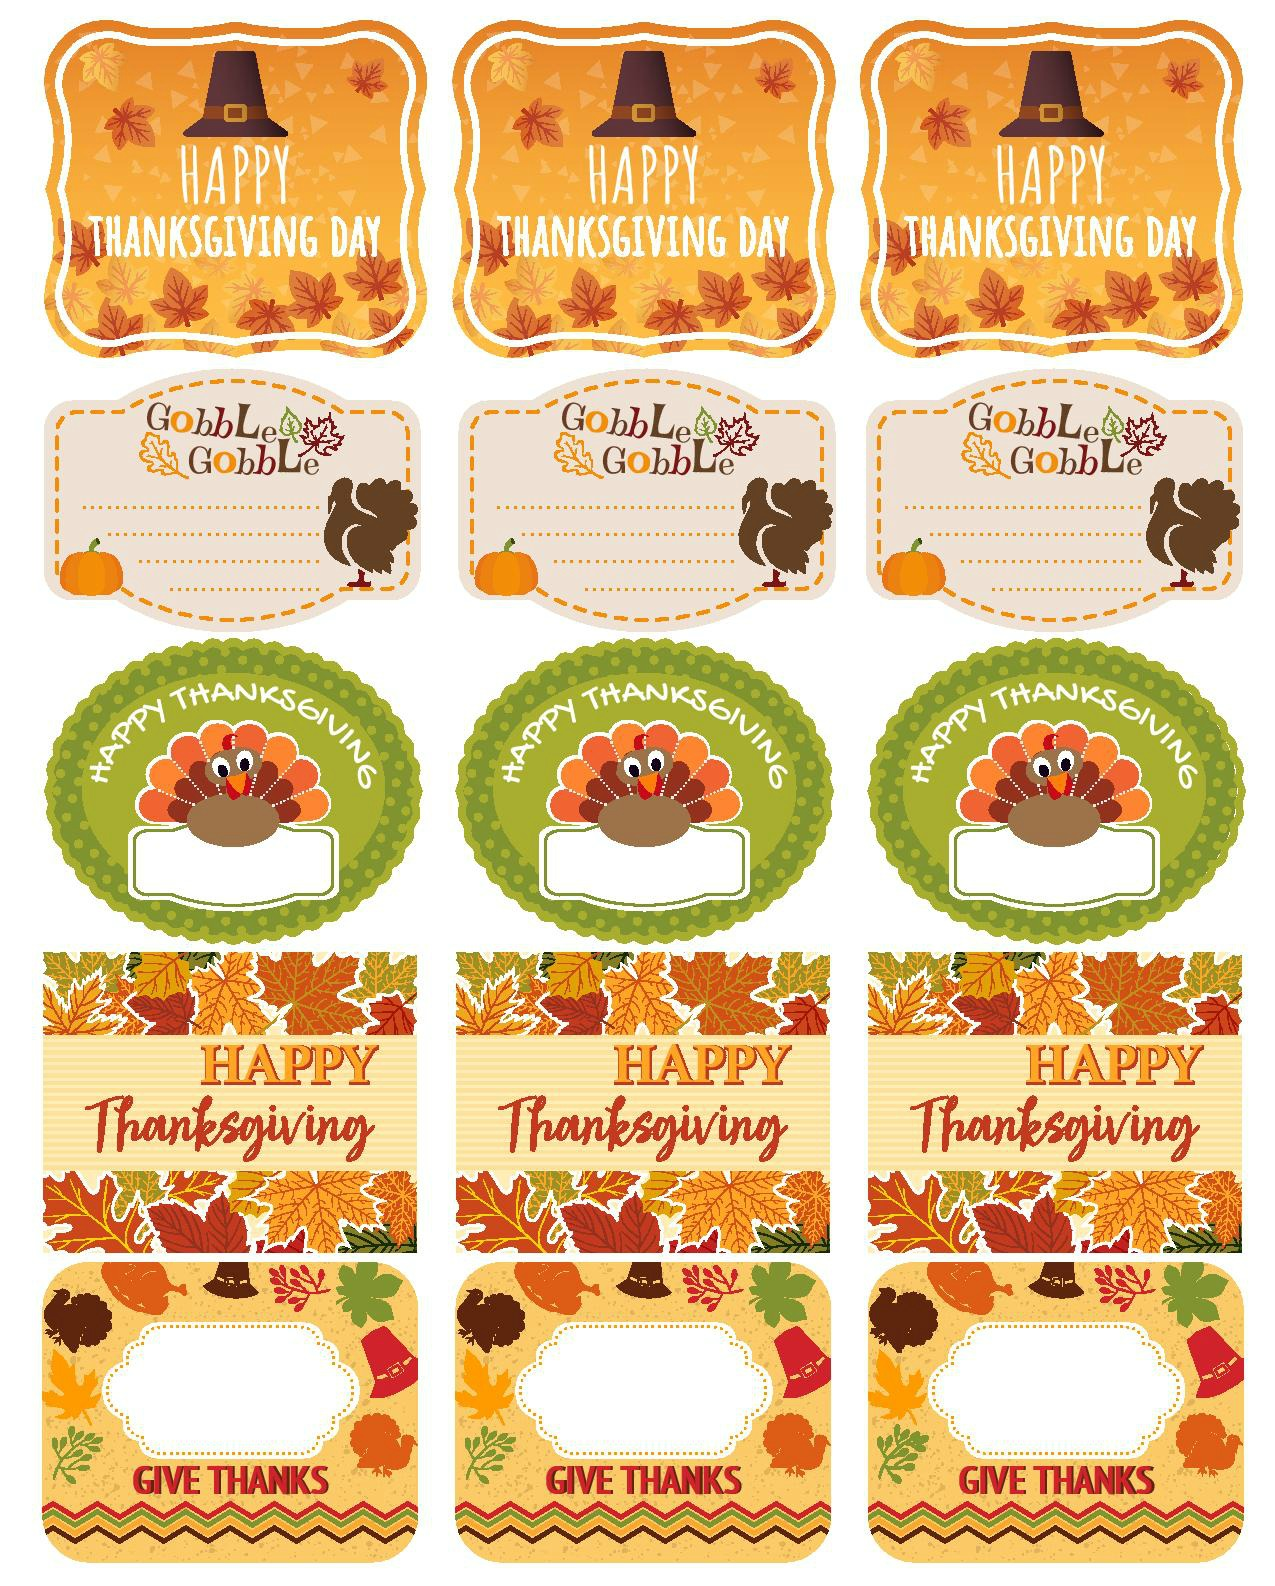 Free And Editable Thanksgiving Printables - My Uncommon ...